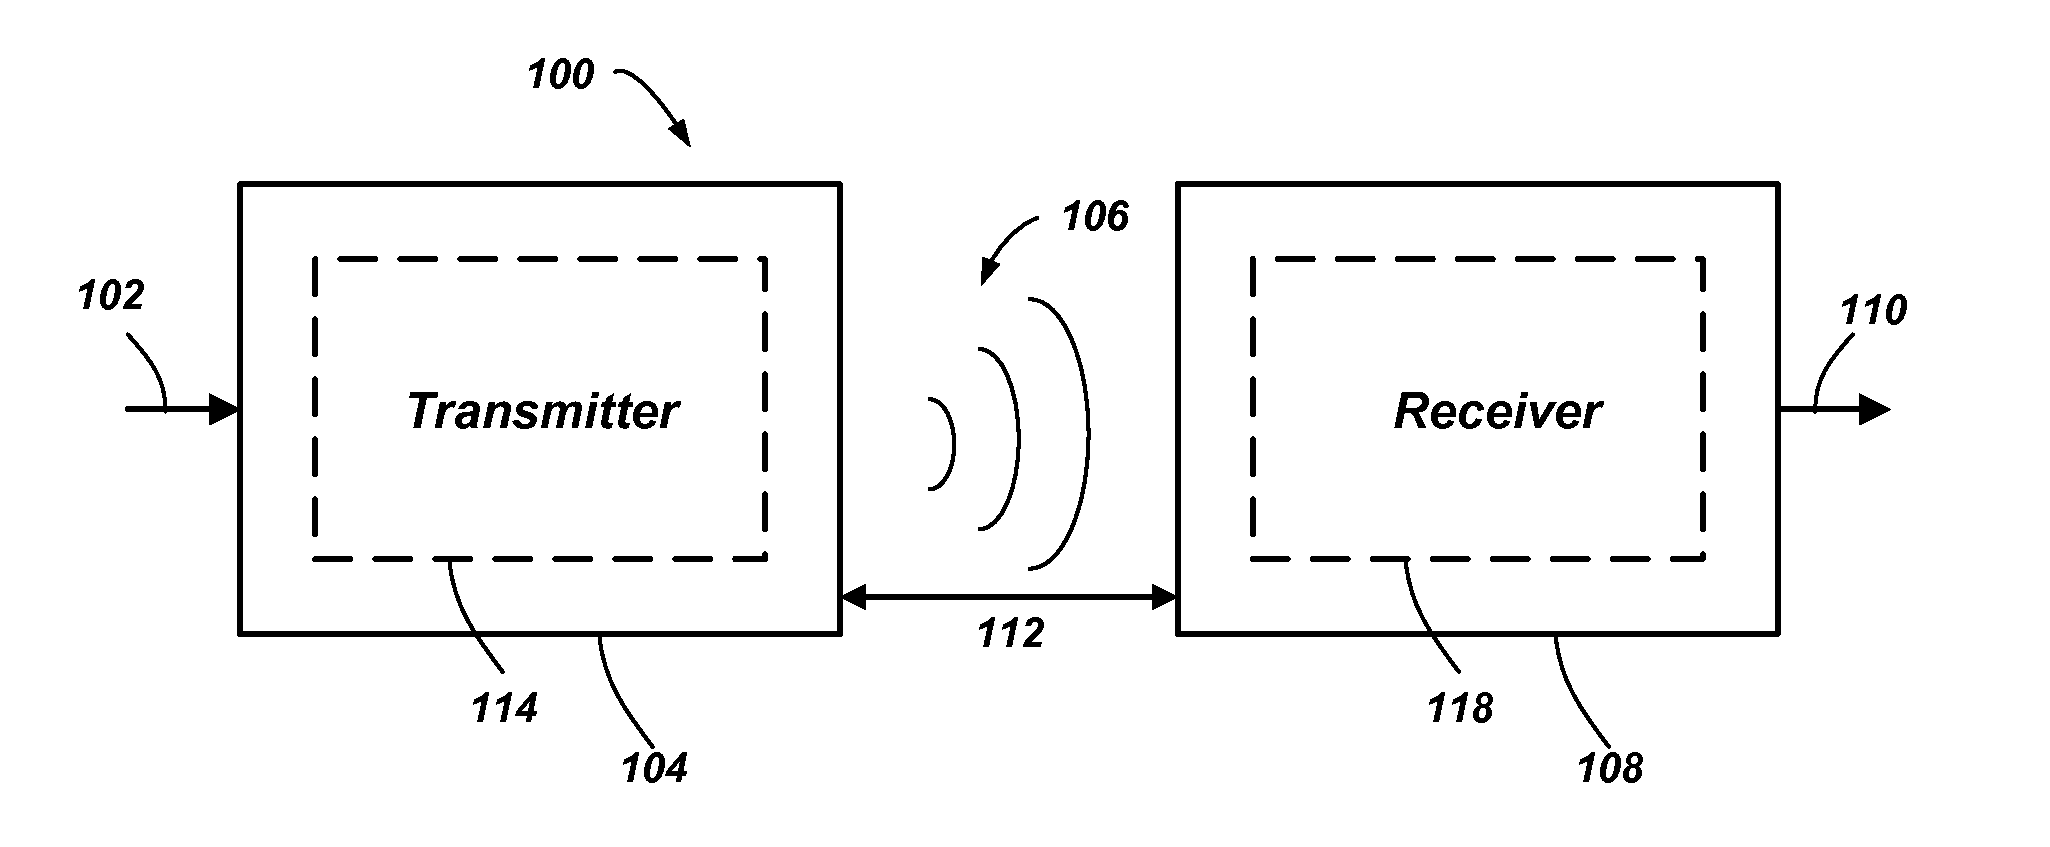 Patent Us20100248622 Tracking Receiver Devices With Wireless Power Is A Typical Block Diagram Of Optical Mouse Transmitter Drawing